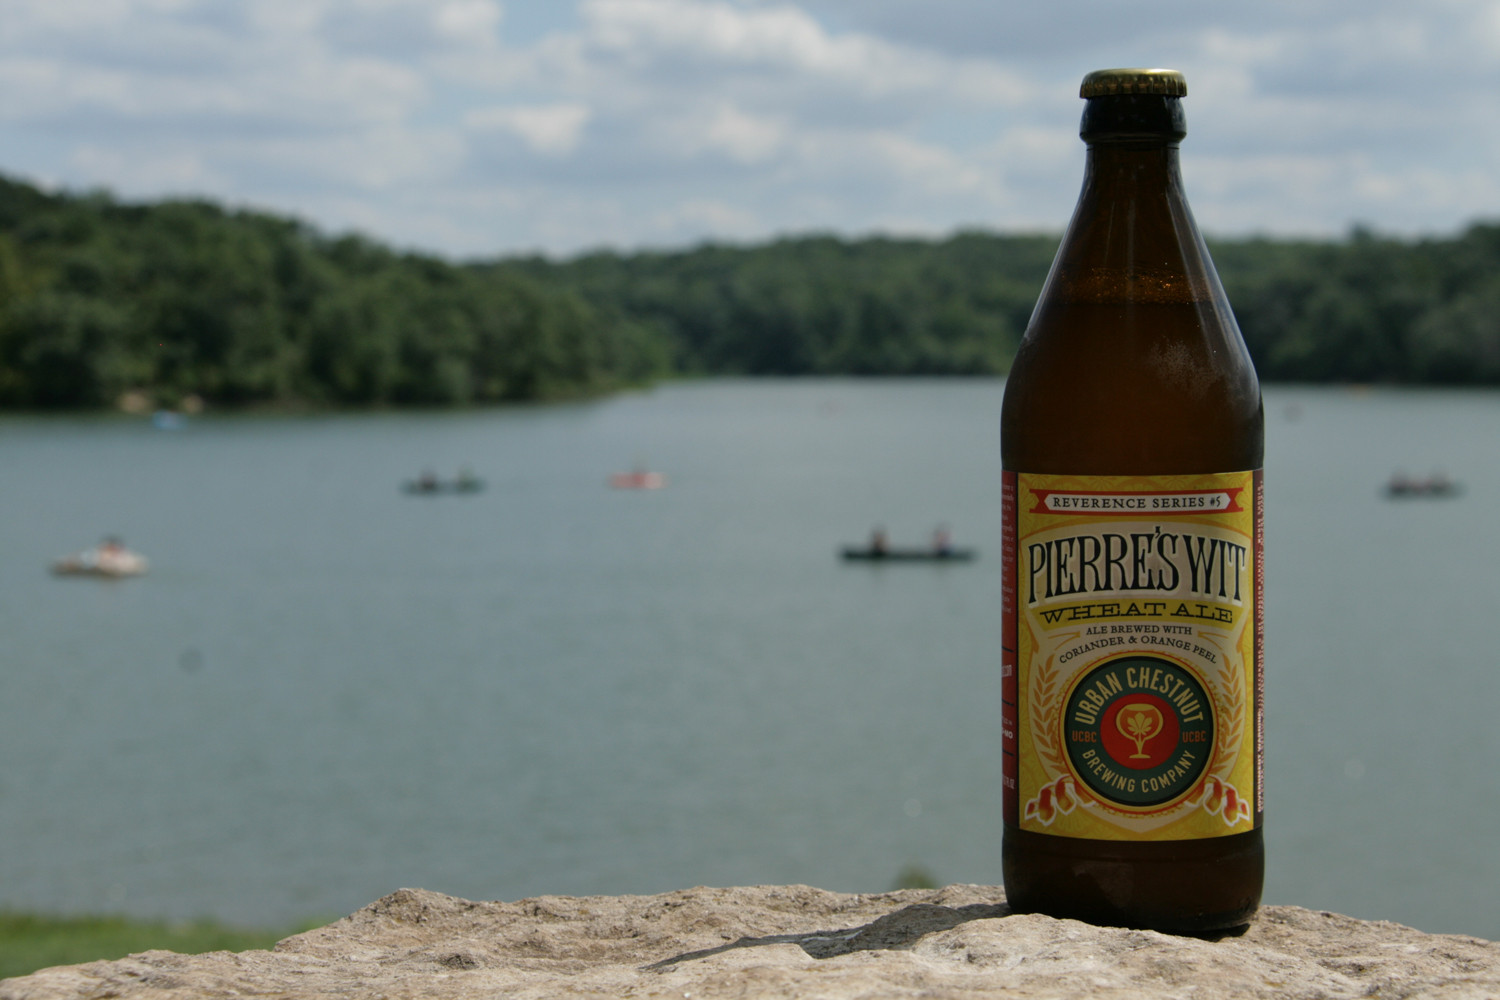 Pierre's Wit is a refreshing summer Belgian wit beer to cool the heat.